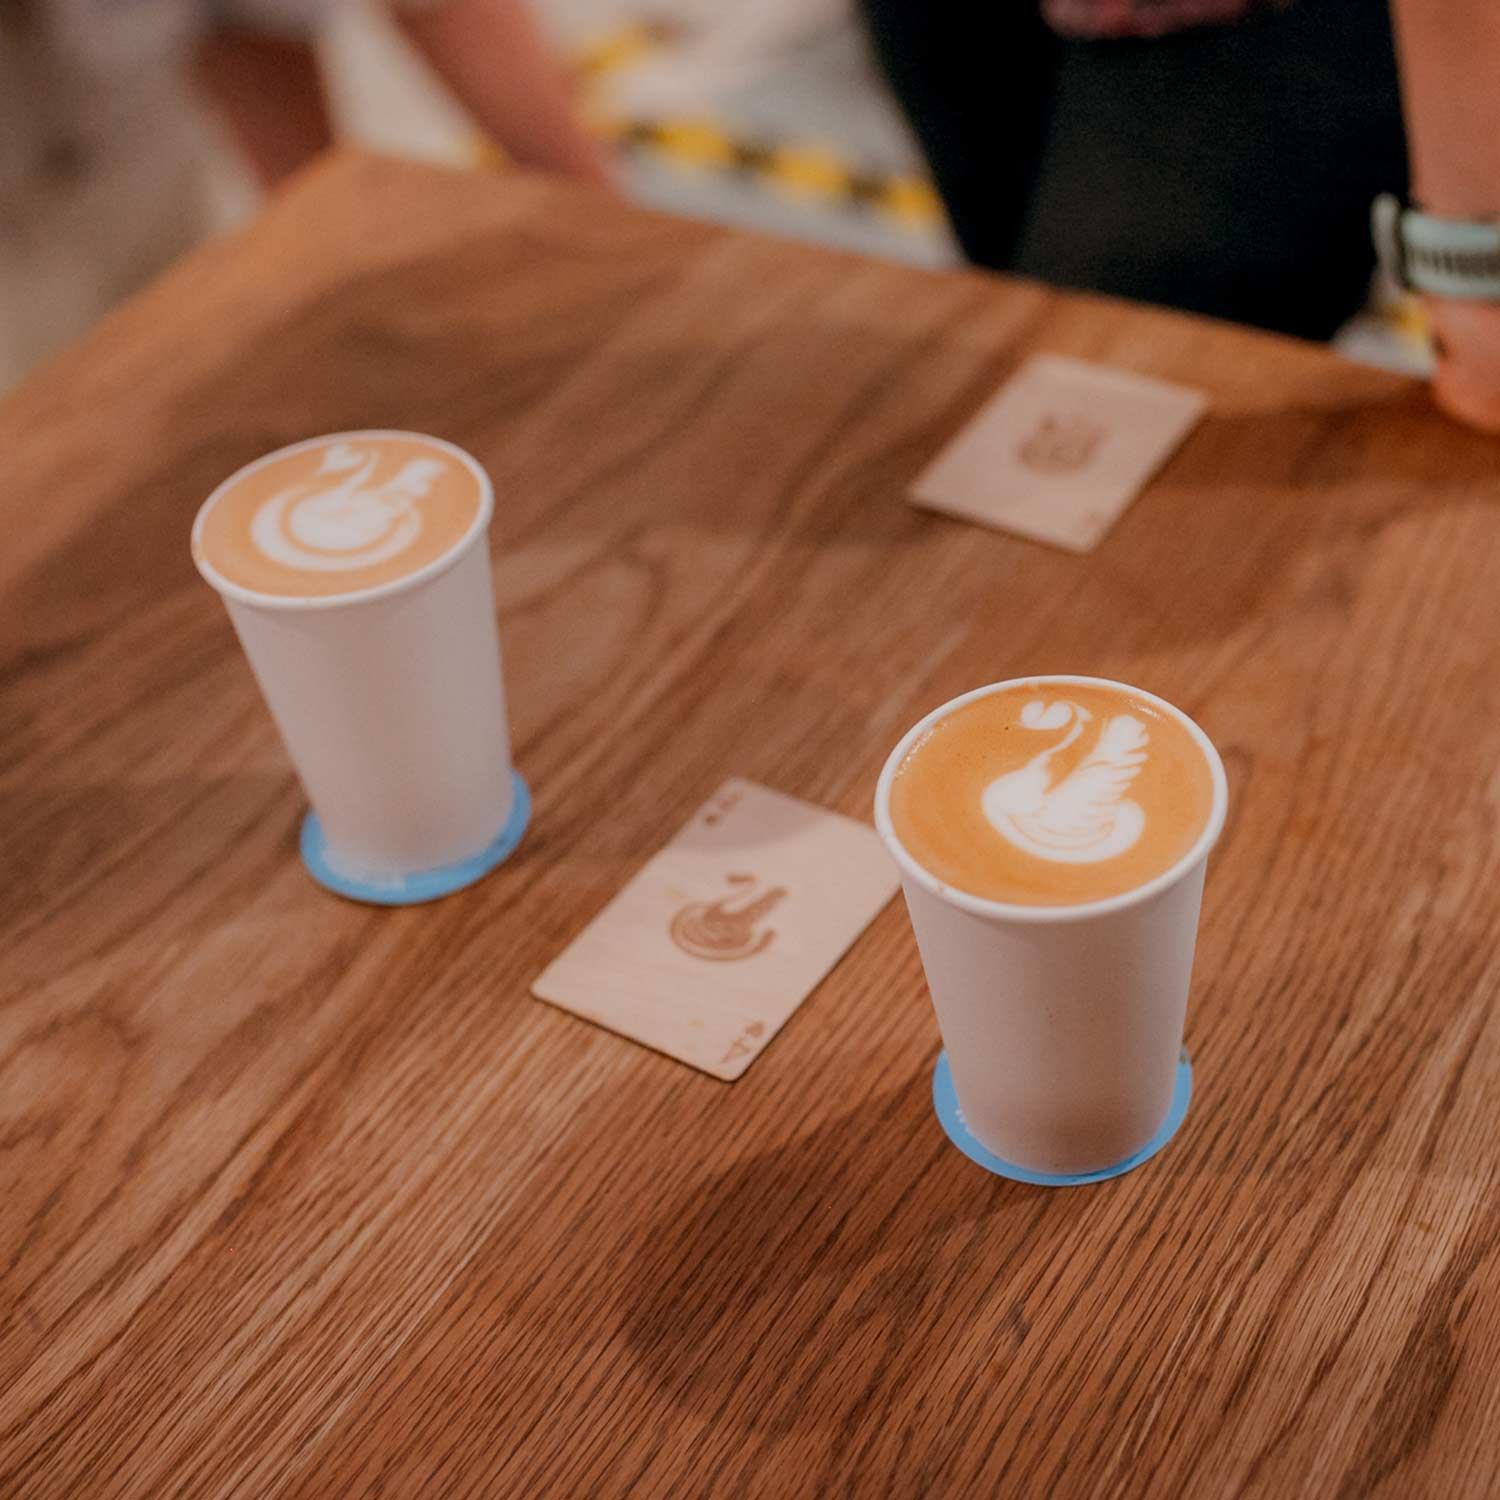 Image of latte art at the RecycleMe Detpak UK Smackdown